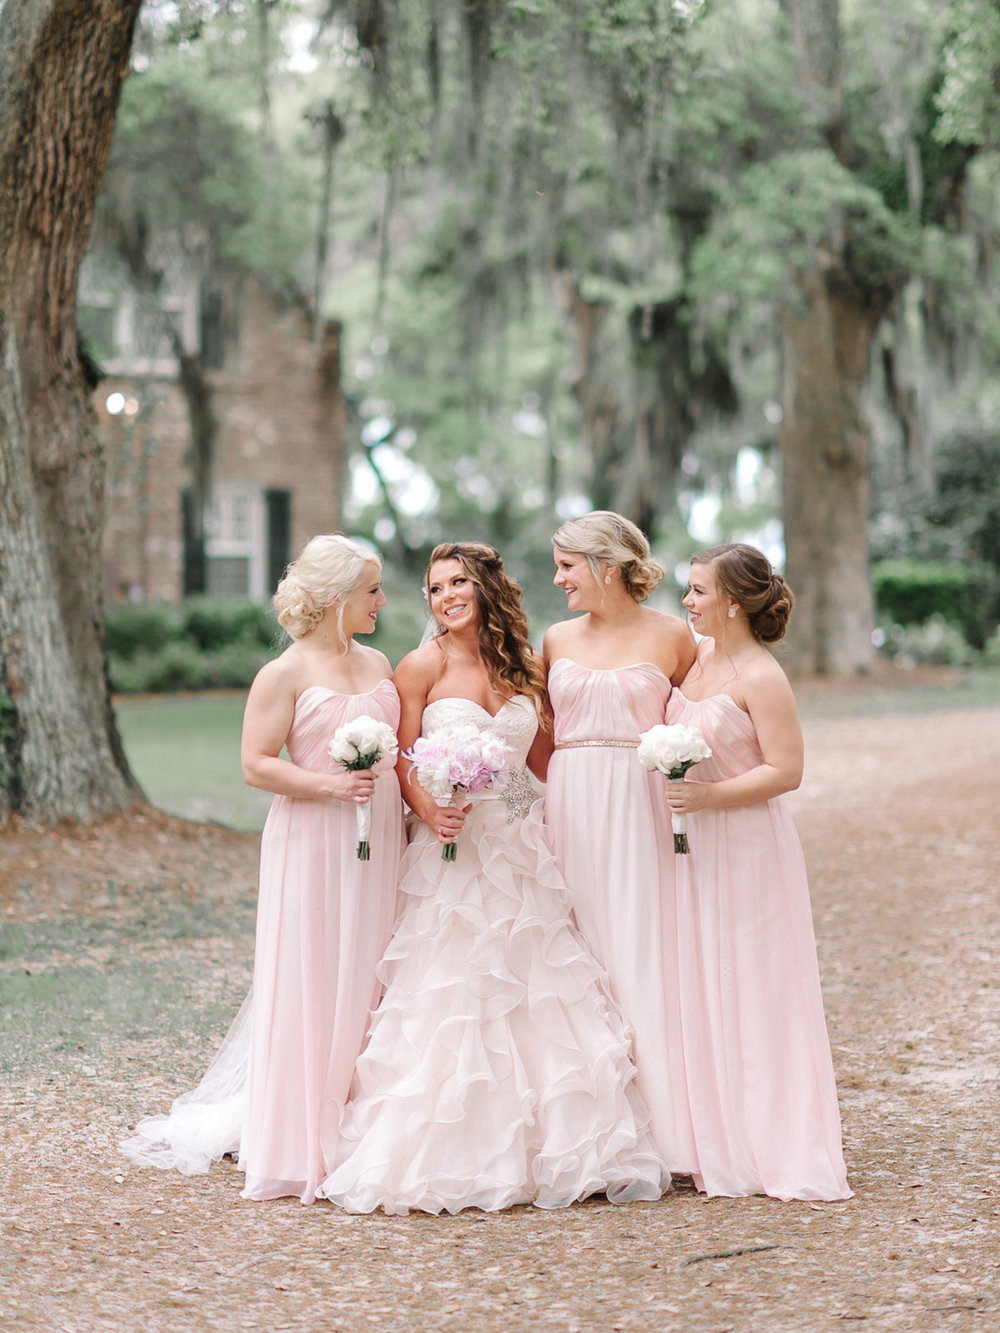 mansfield-plantation-wedding-15.jpg